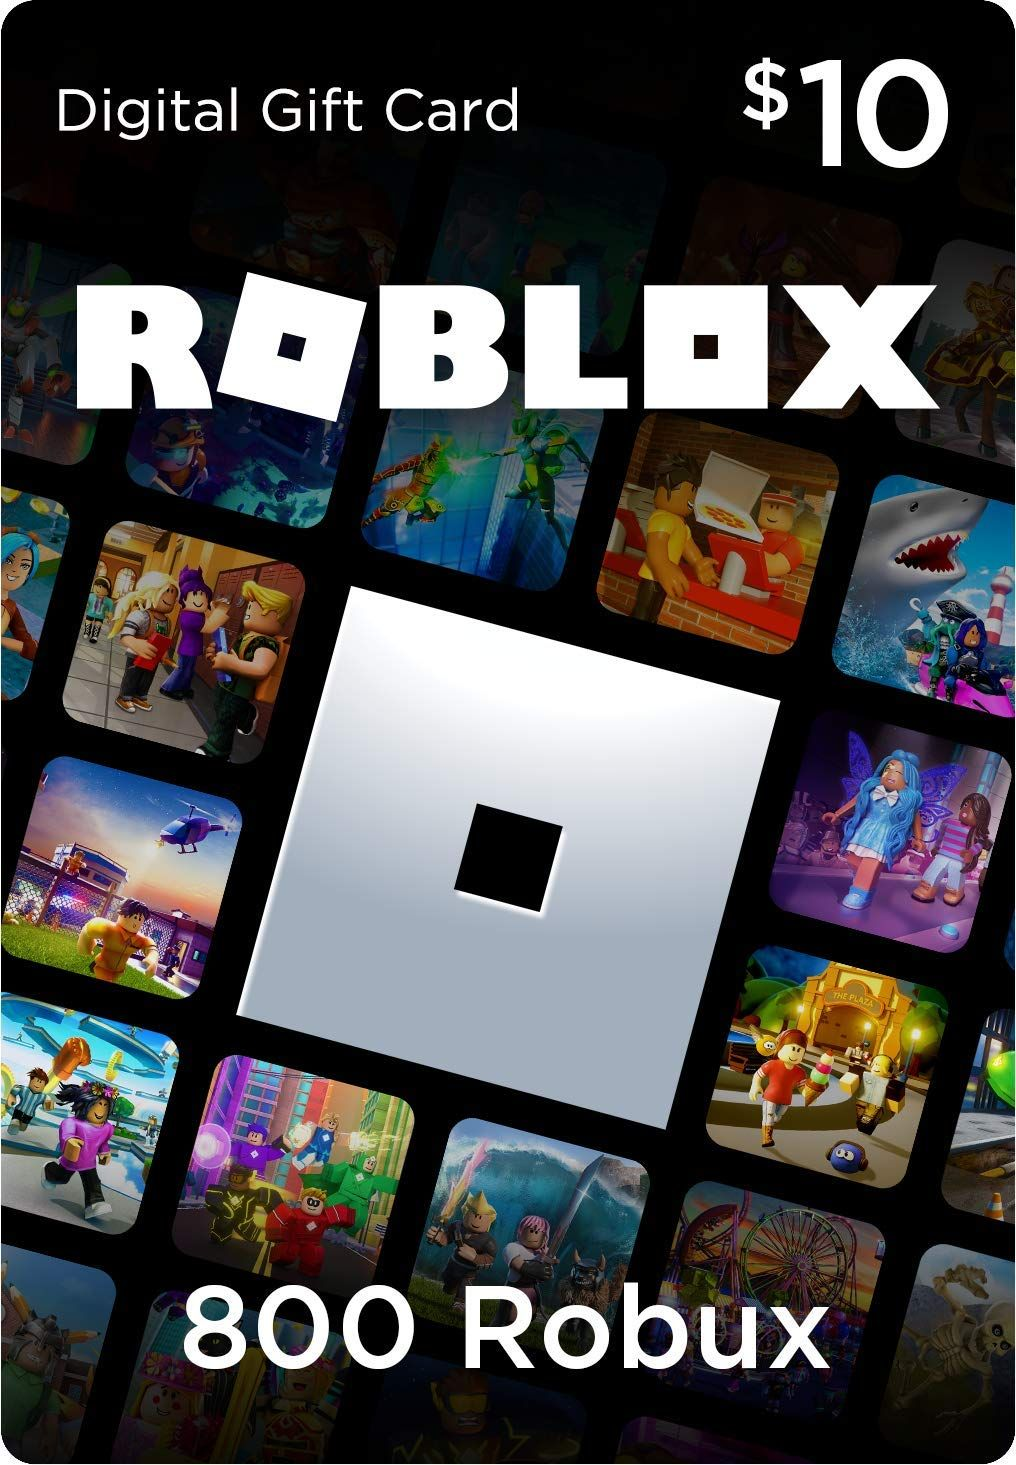 Roblox Gift Card 800 Robux Game Code] in 2020